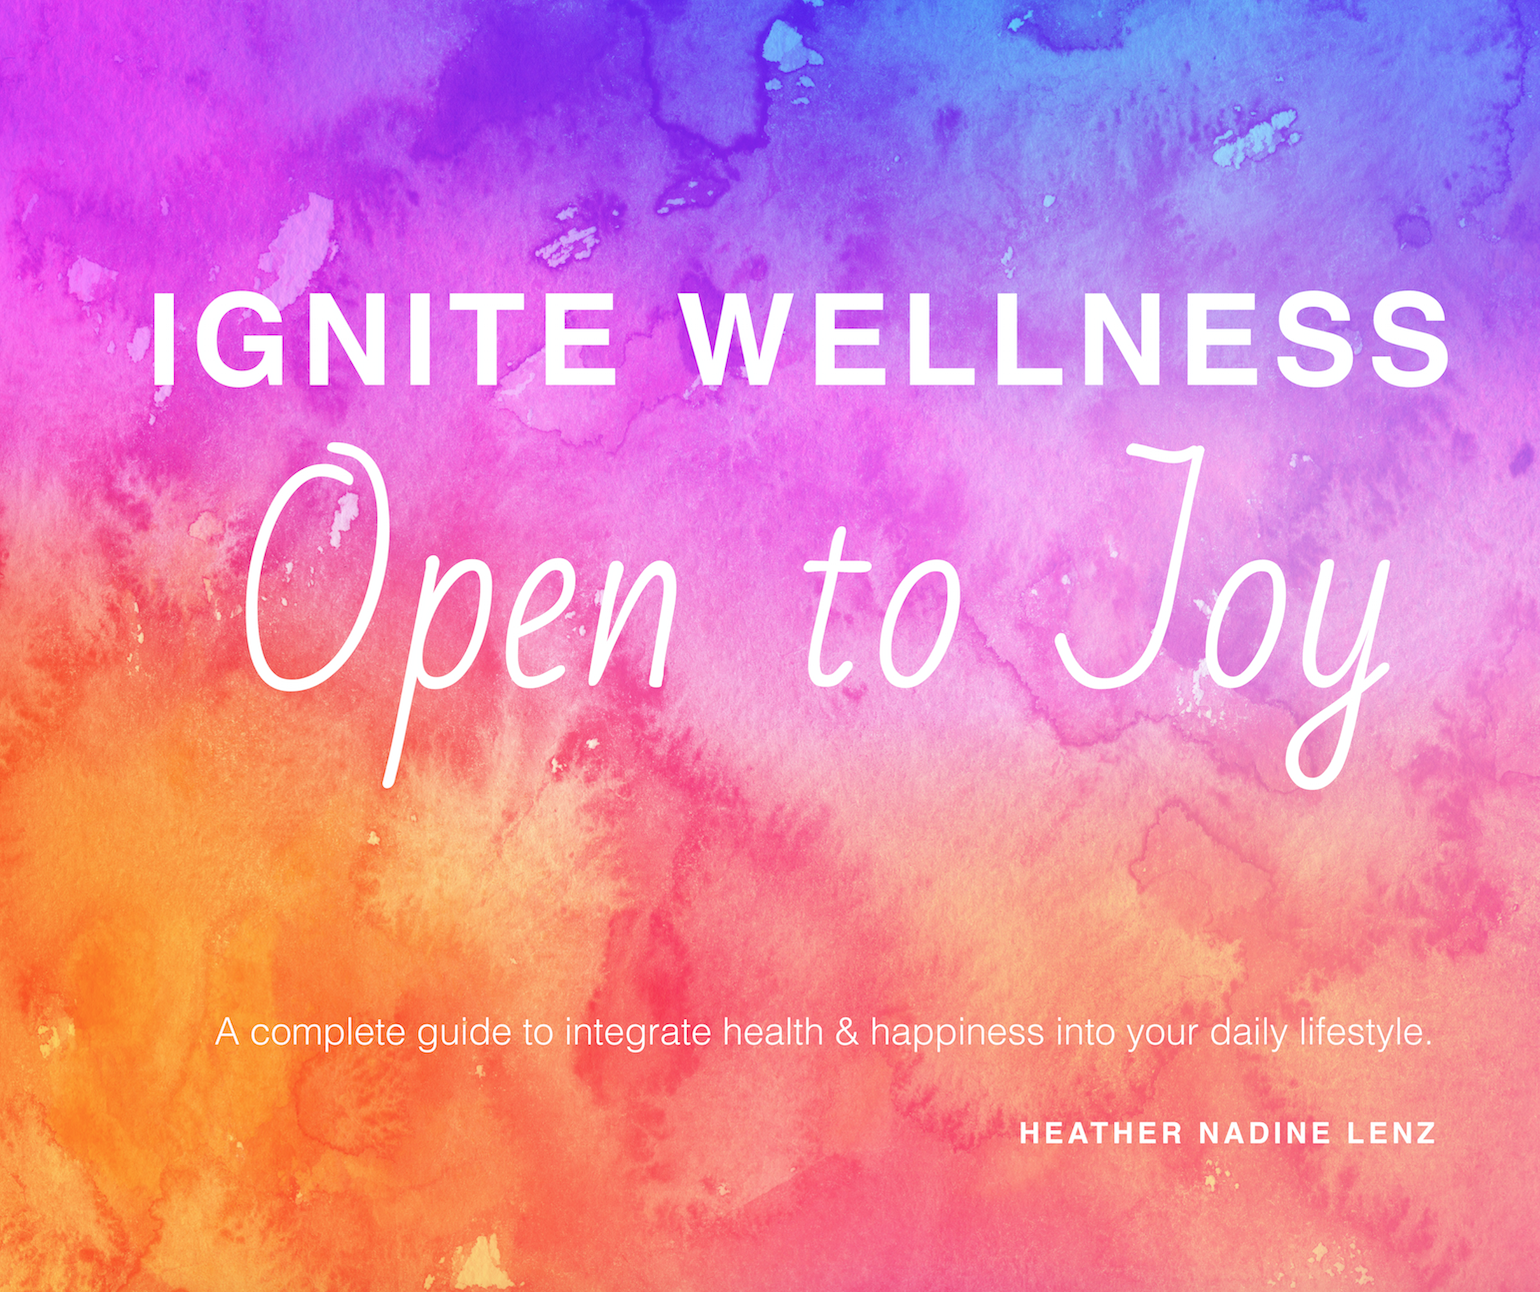 Ignite Wellness, Open to Joy: A guide to integrate more health & happiness into your daily lifestyle.